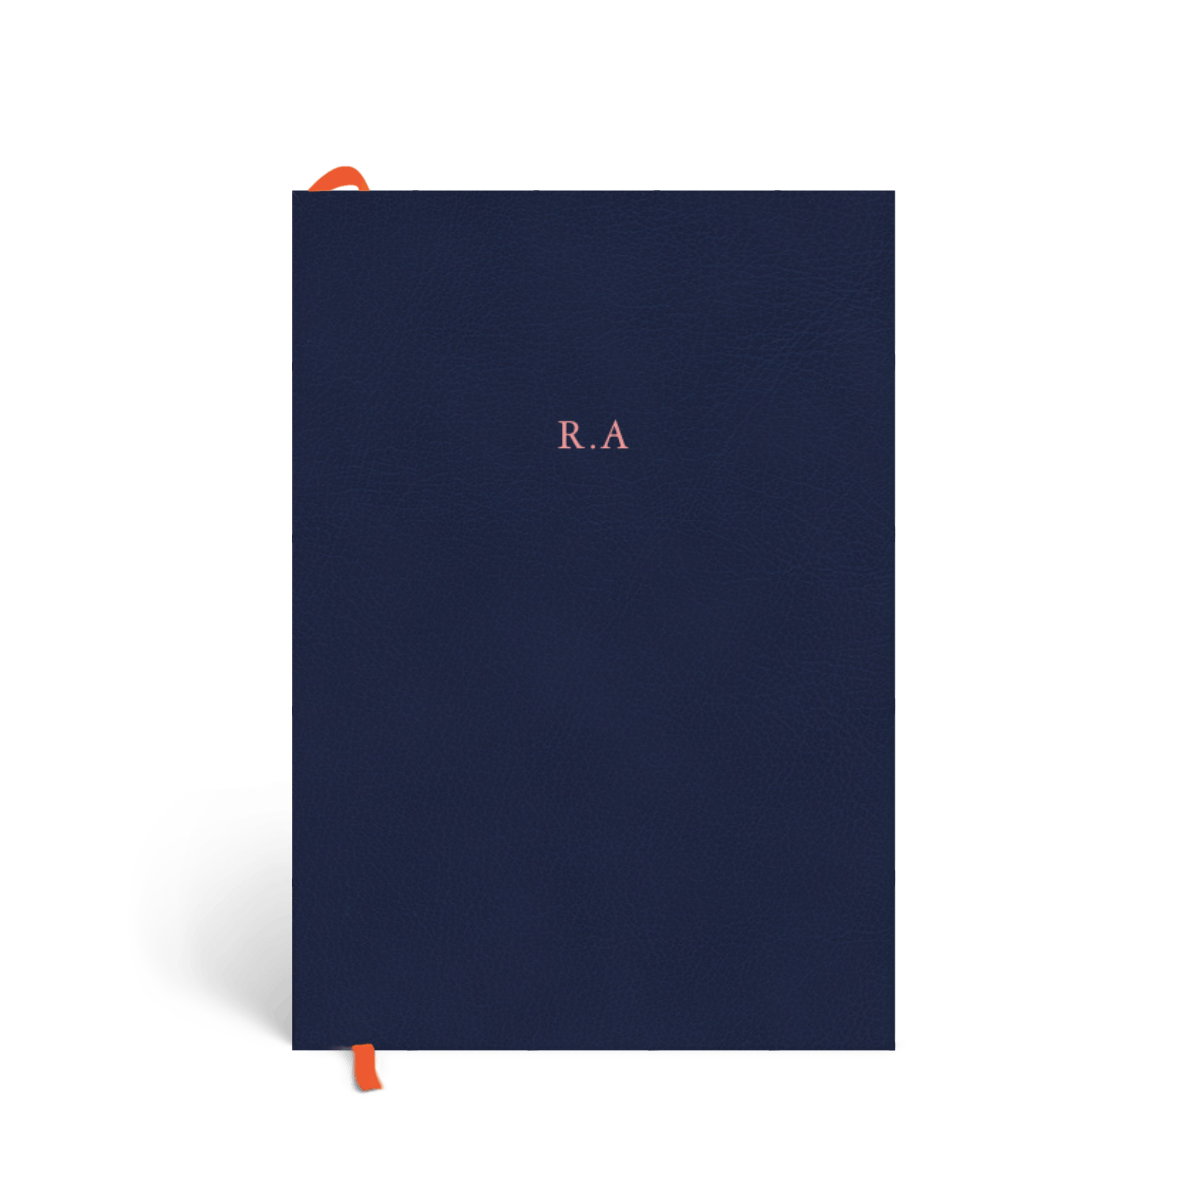 Https%3a%2f%2fwww.papier.com%2fproduct image%2f95376%2f113%2froyal blue monogram 23880 front 1573495872.png?ixlib=rb 1.1